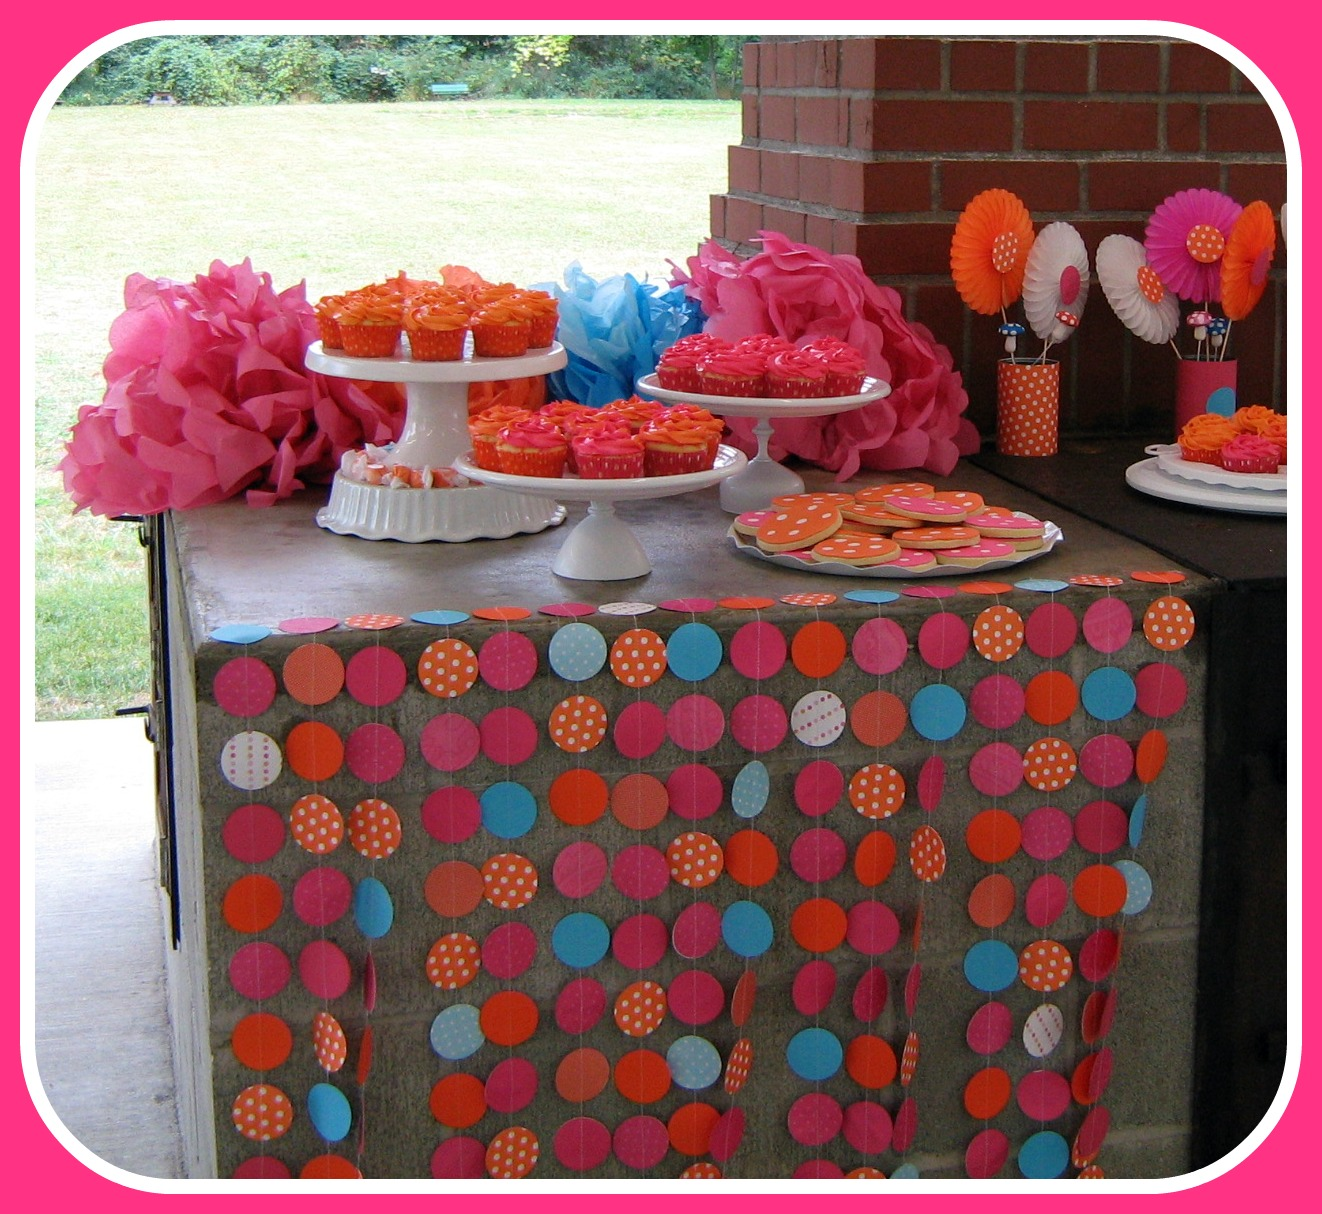 Fowl single file polka dot party dessert table and food for Polka dot party ideas